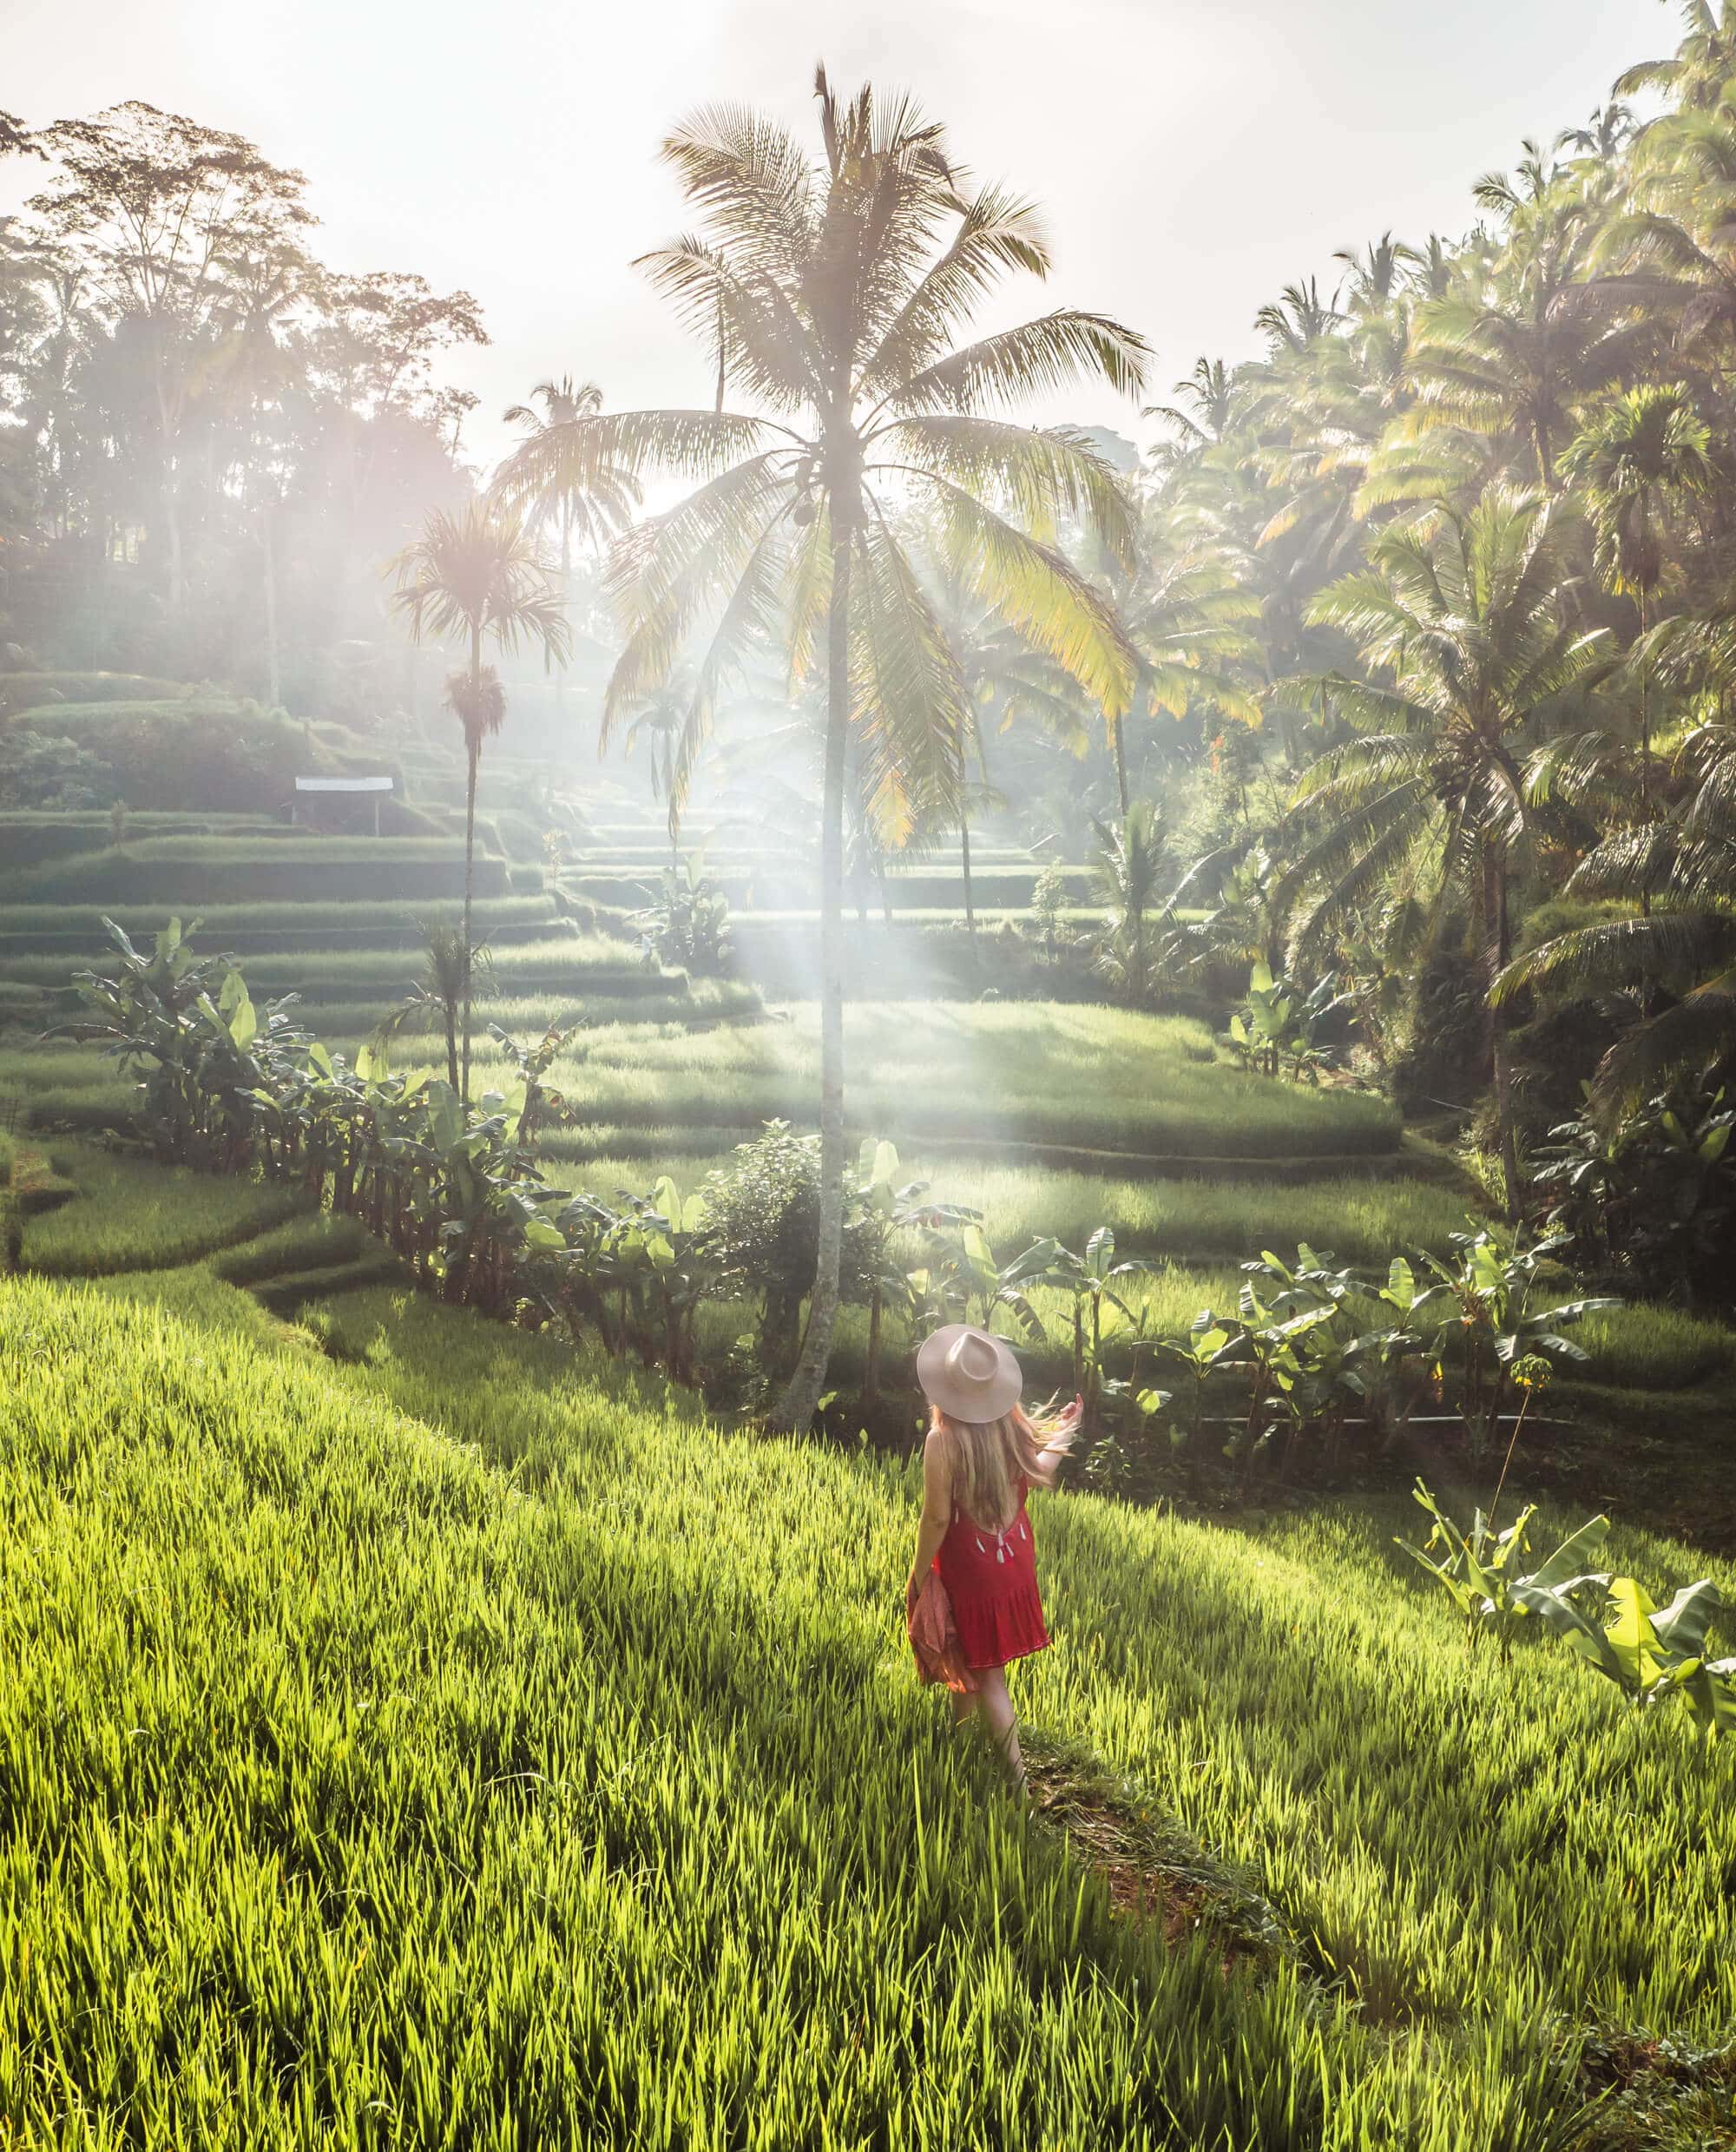 Walking through the rice fields in Tegalalang Rice Terrace Ubud - The popular Instagram sunrise photo spot